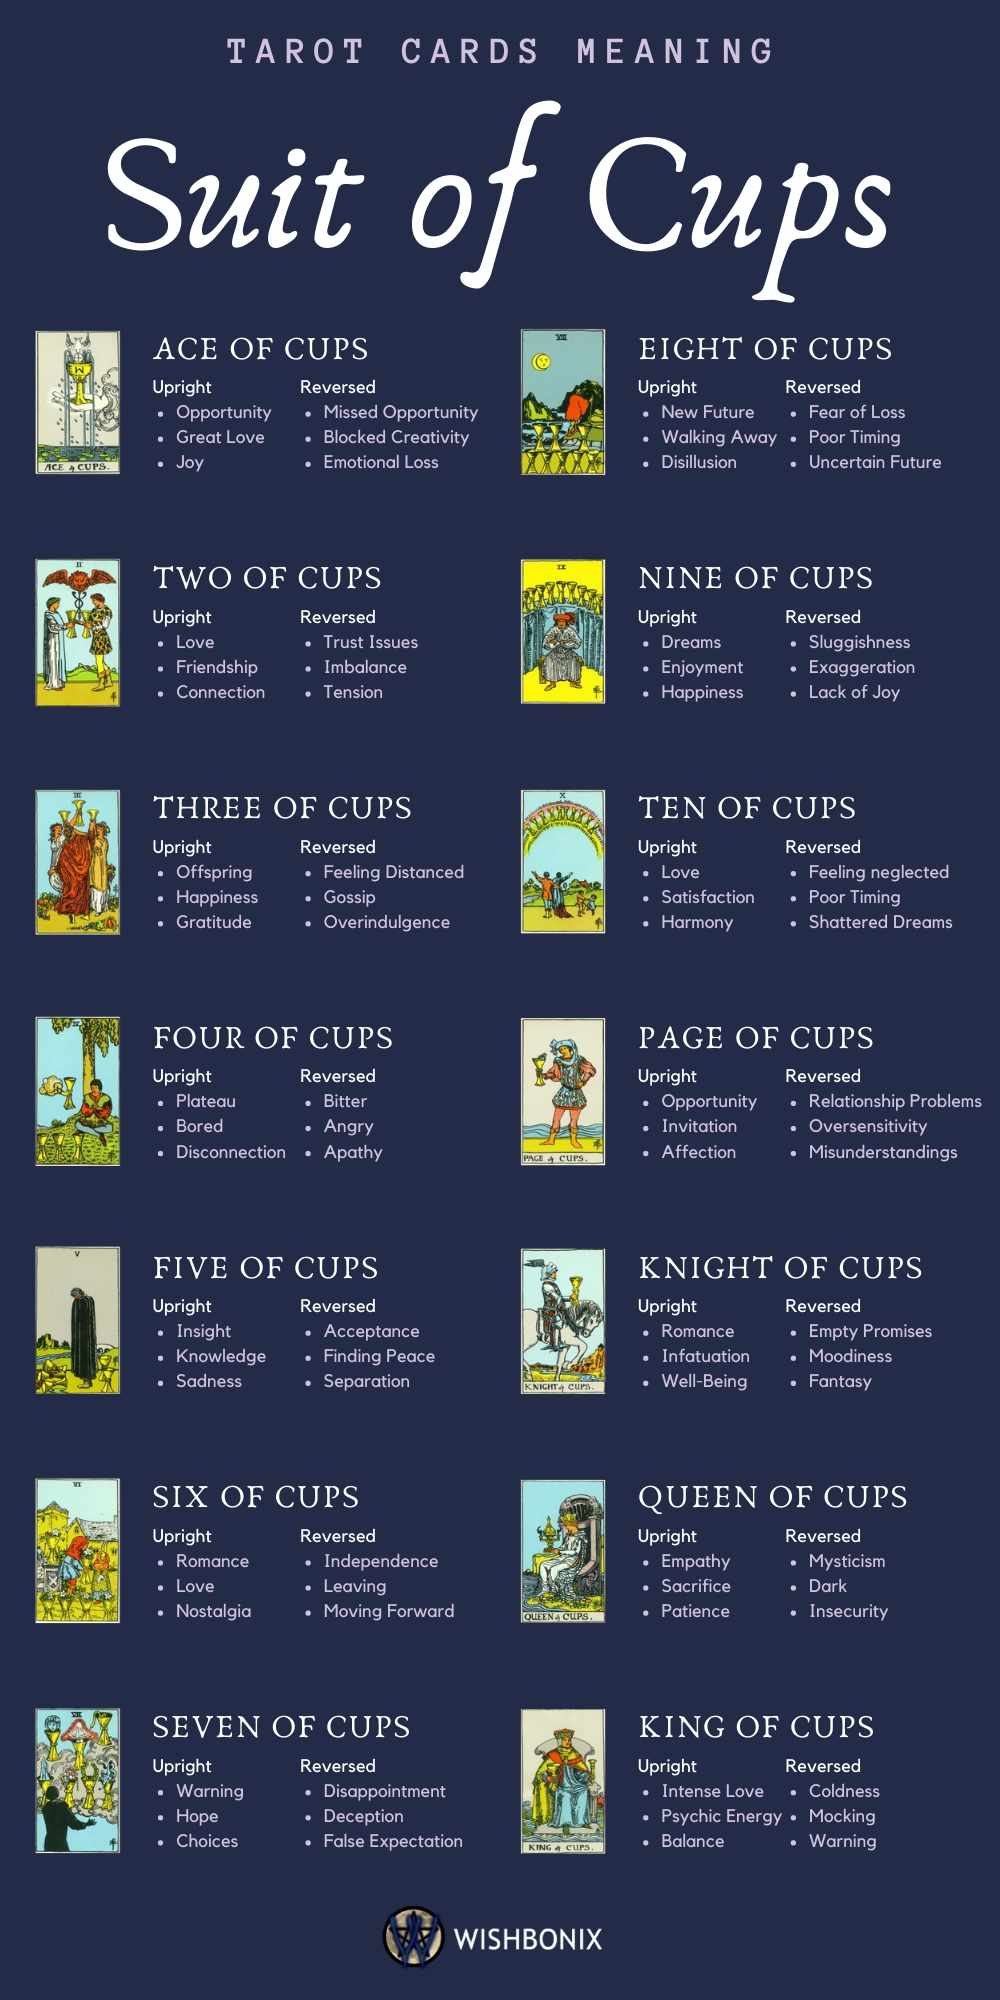 The Meaning of the Suit of Cups